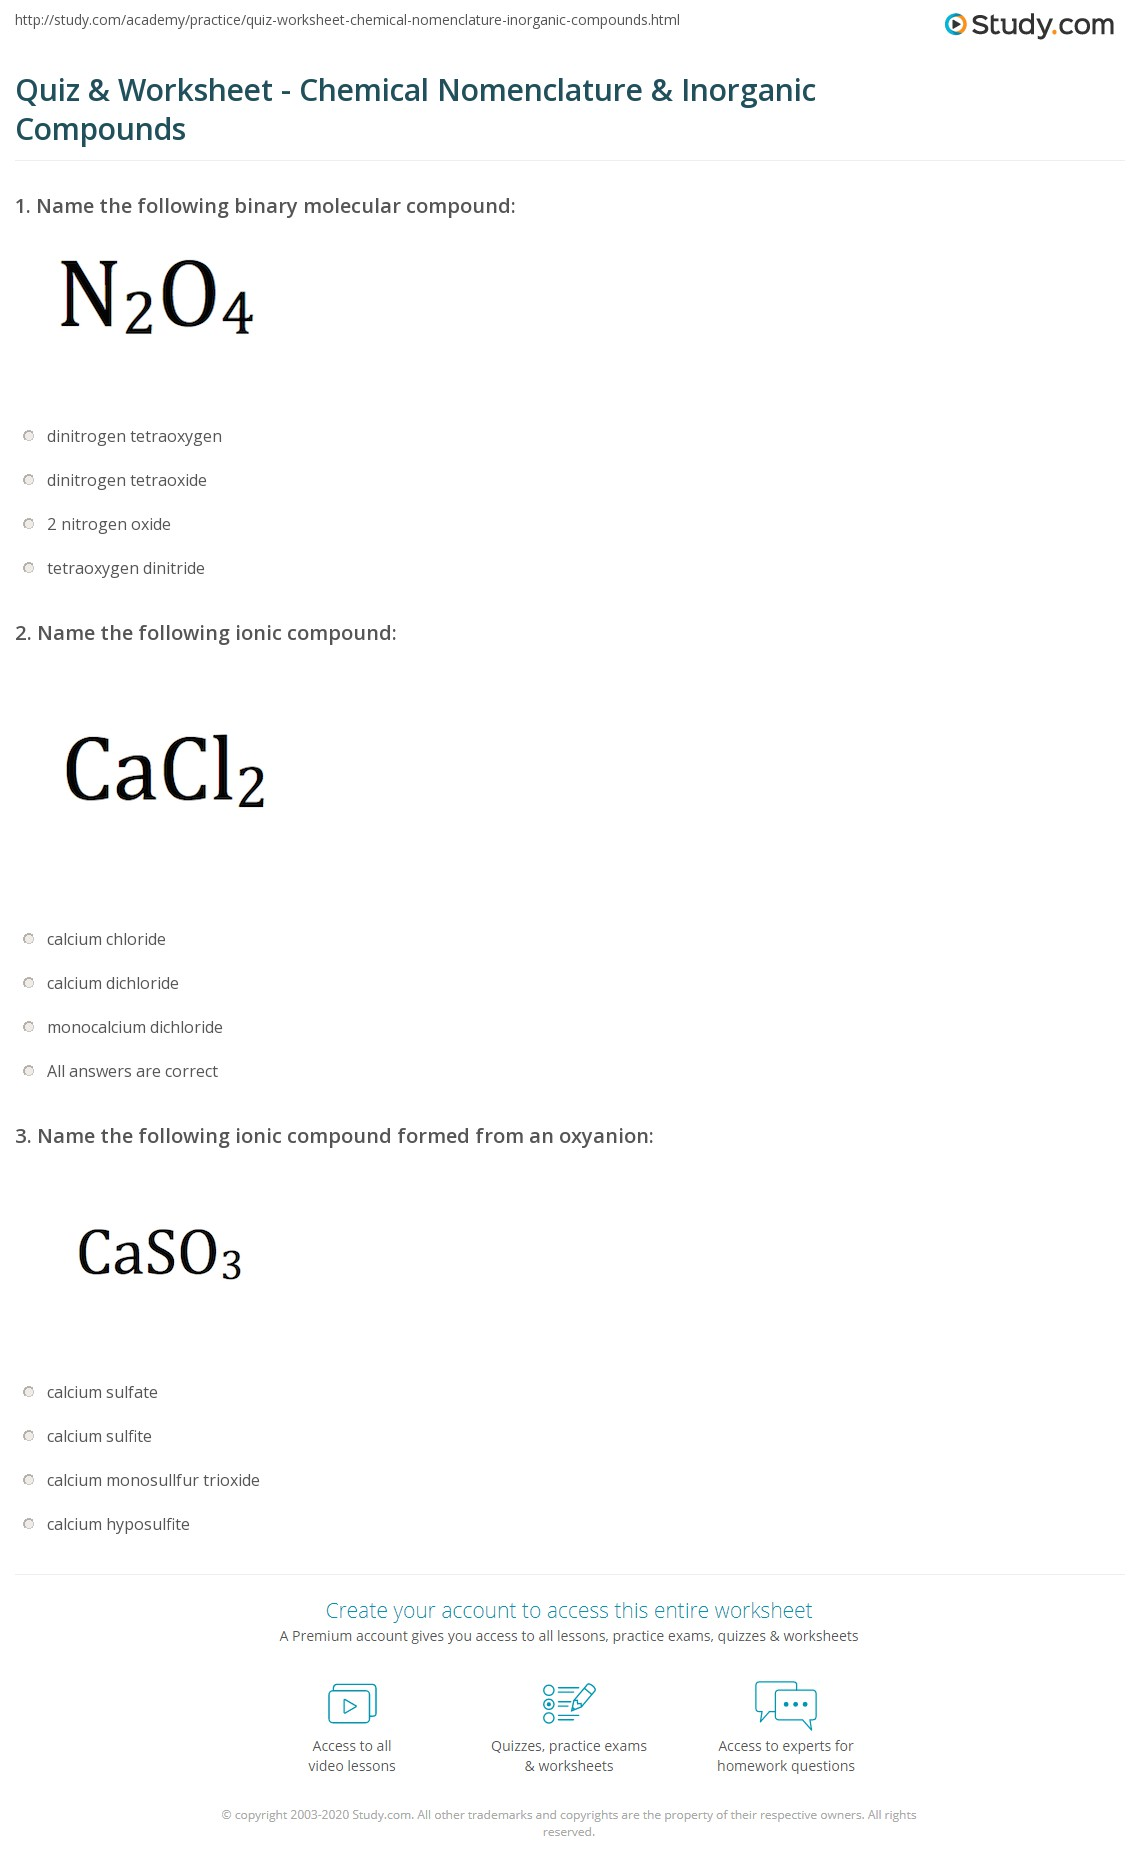 Quiz Worksheet Chemical Nomenclature Inorganic Compounds – Ionic Compound Naming Worksheet